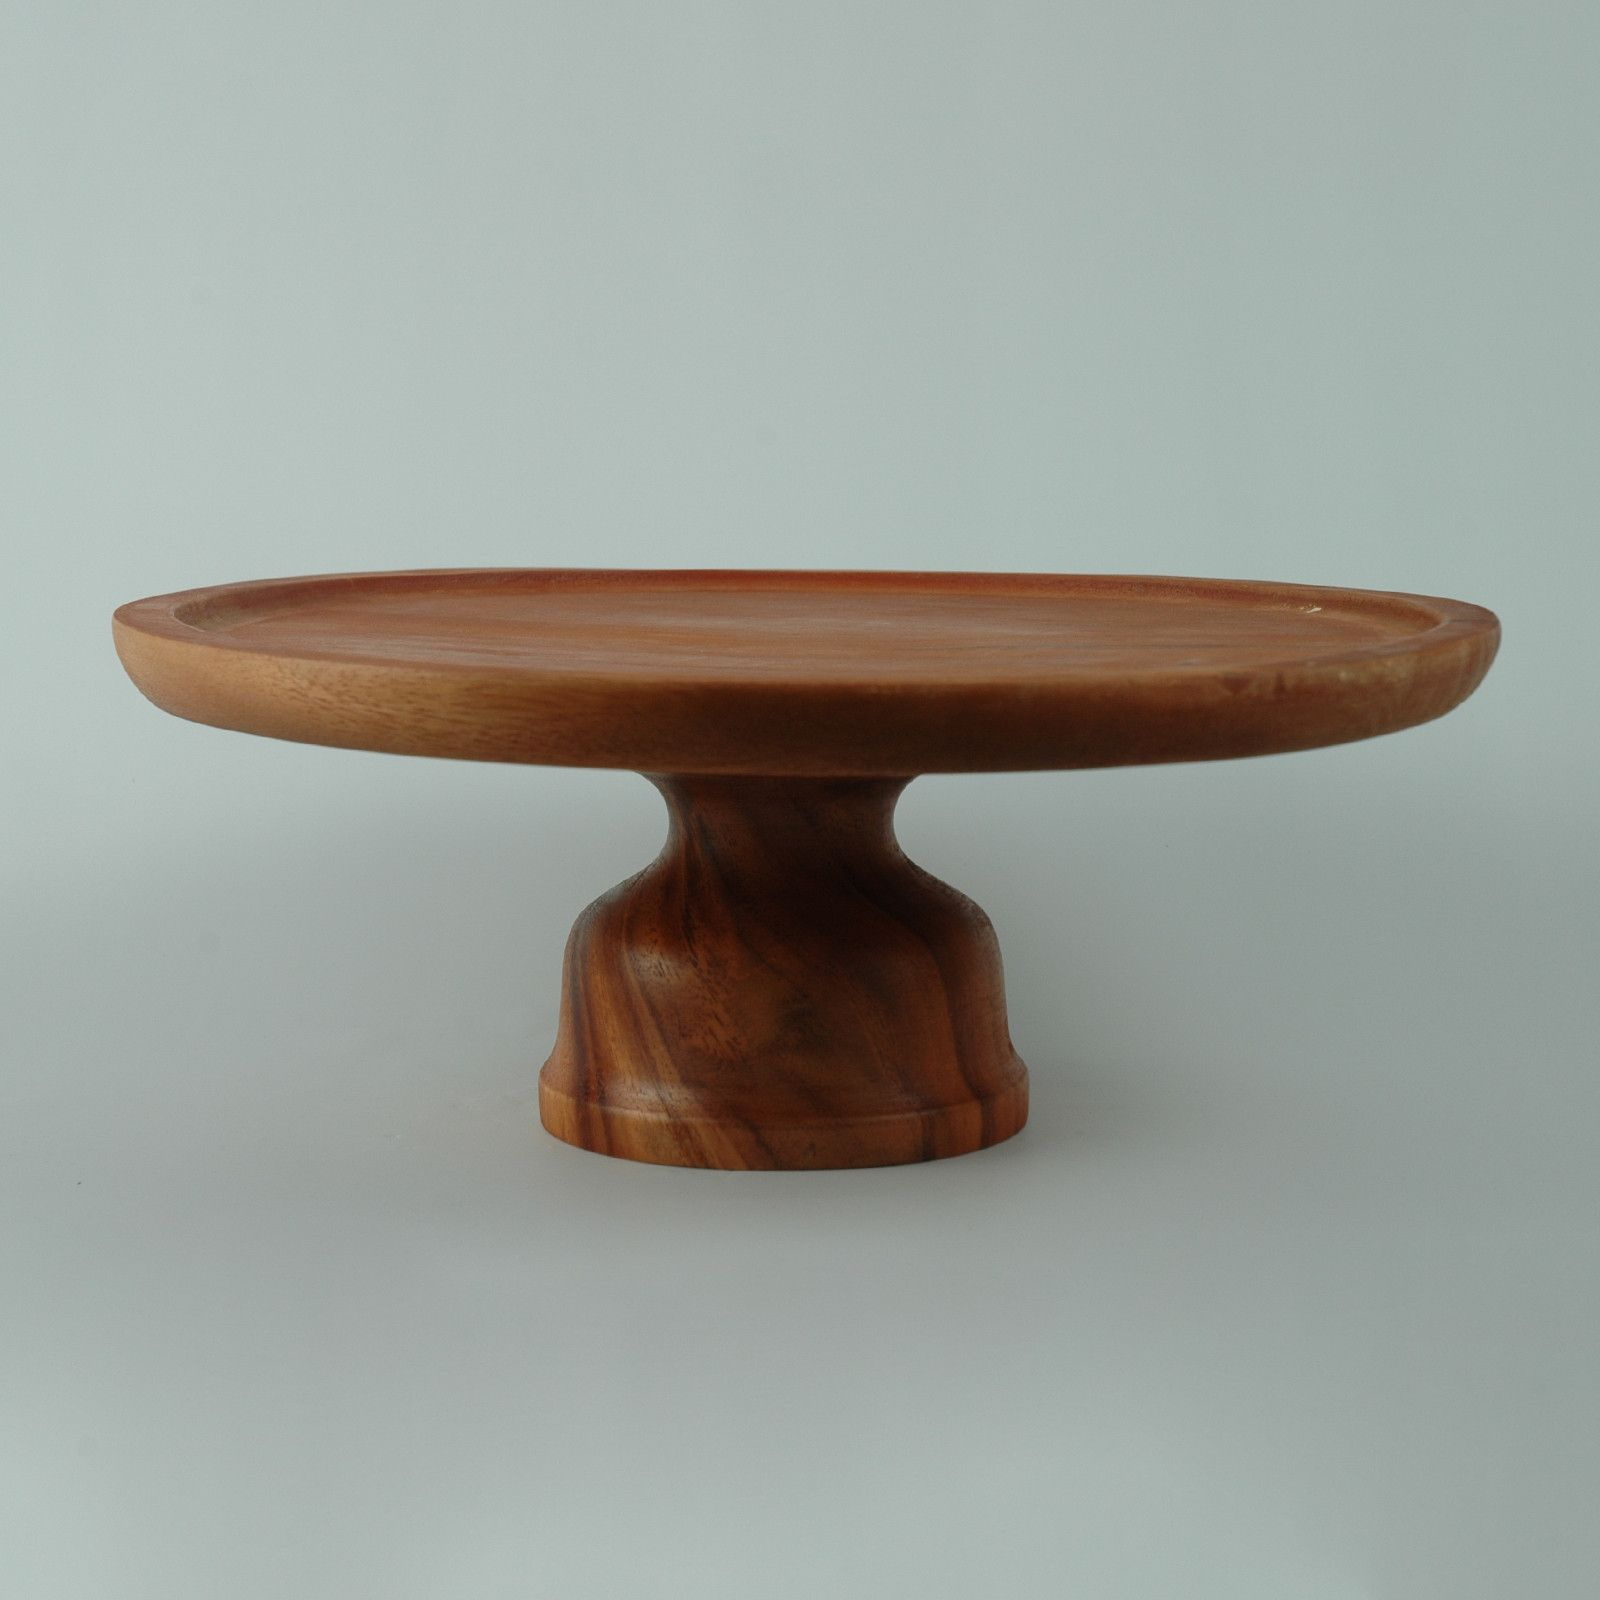 Adcraft wcs414 13 cake stand wooden wooden cake stand